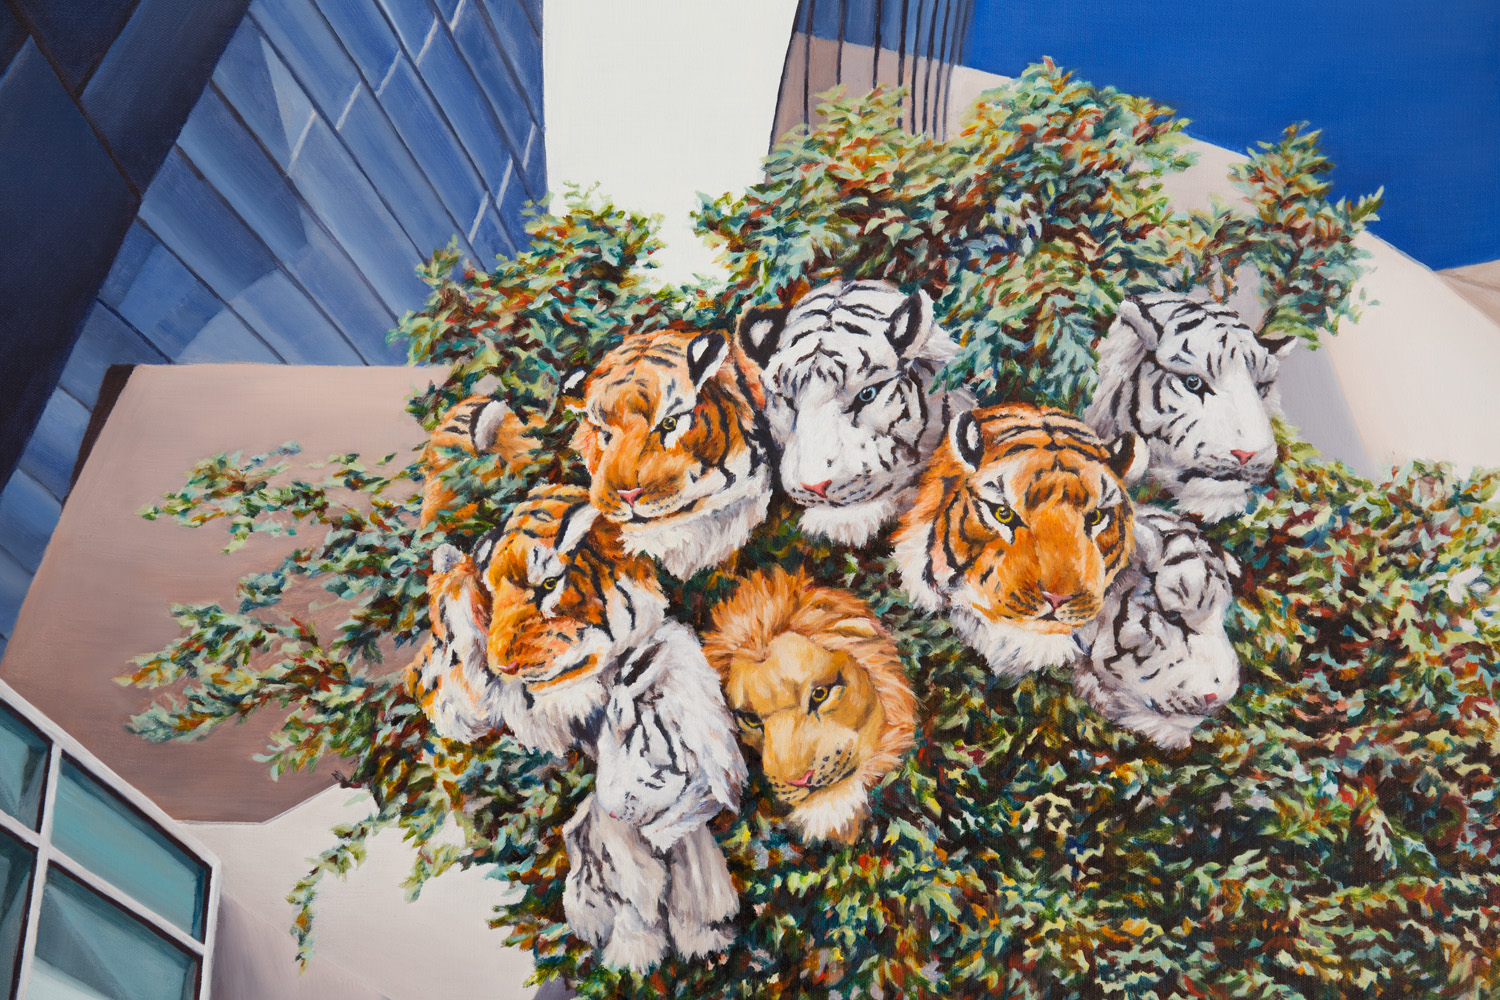 Kevin Chin, Jungle (detail), 2019, oil on Italian linen, 98 x 148 cm